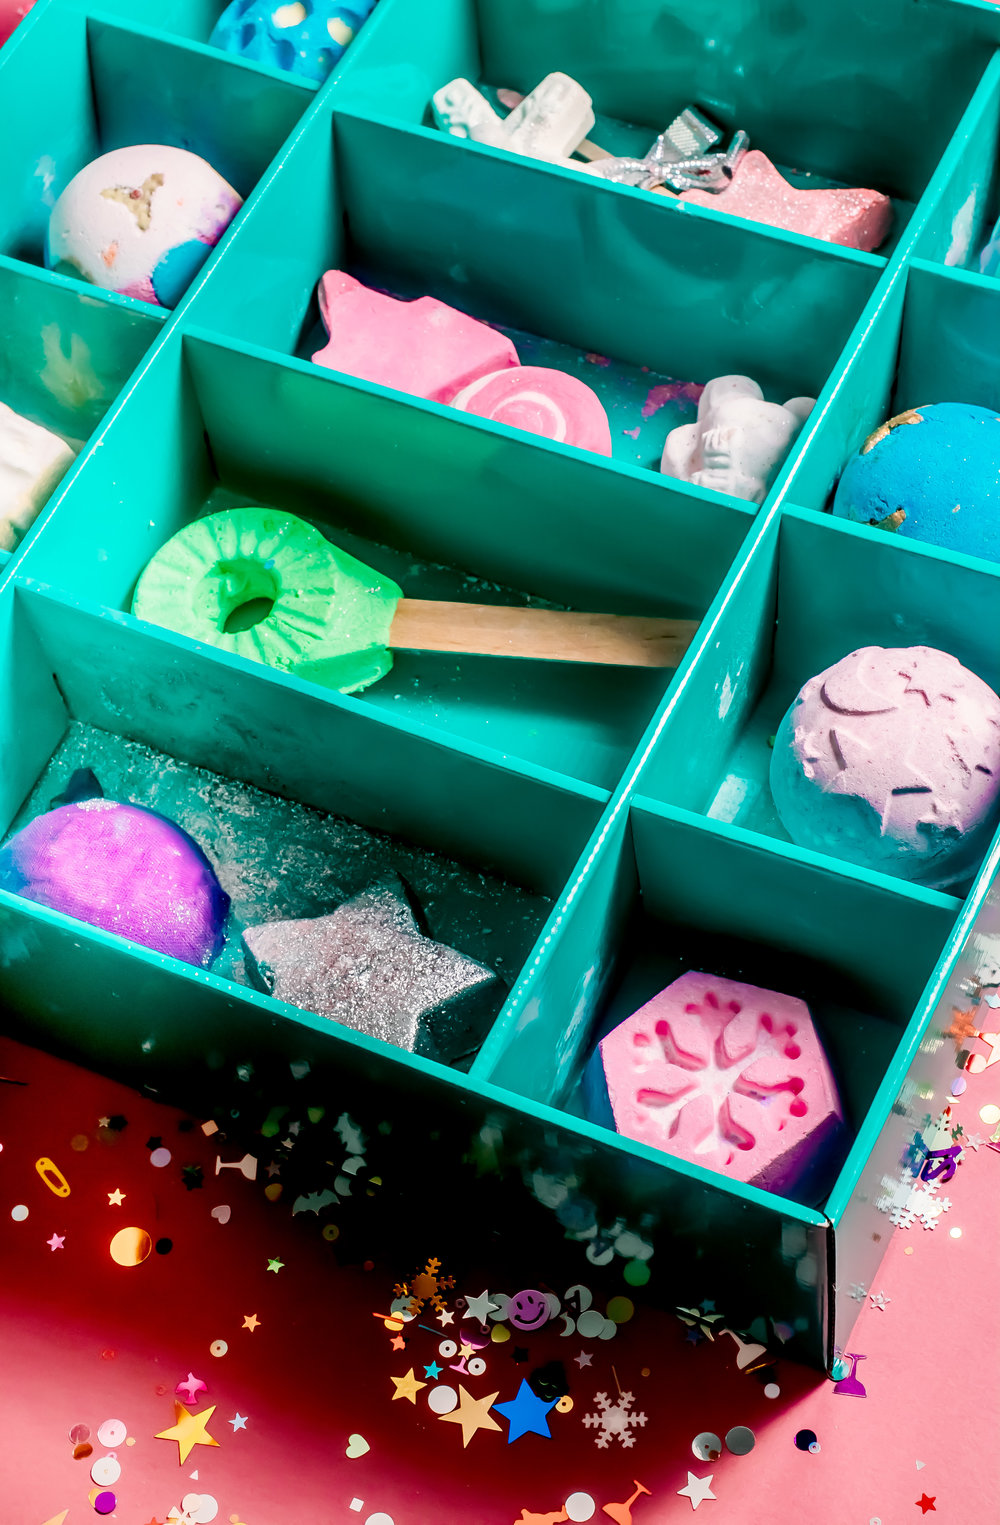 Lush Christmas dreamscape gift set